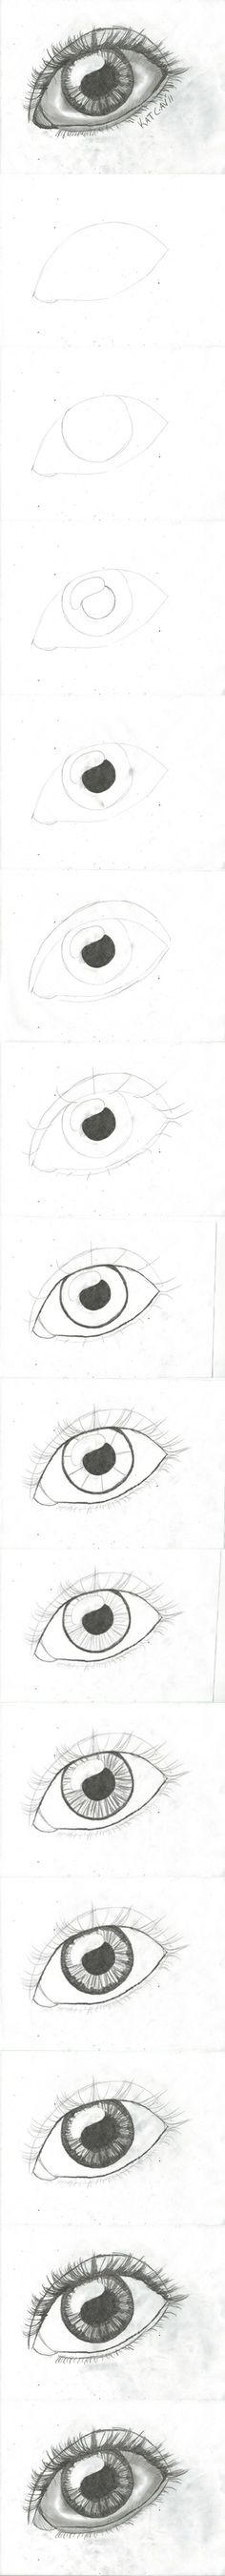 How to draw an eye step by step DIY instructions How to draw an eye step by step DIY instructions